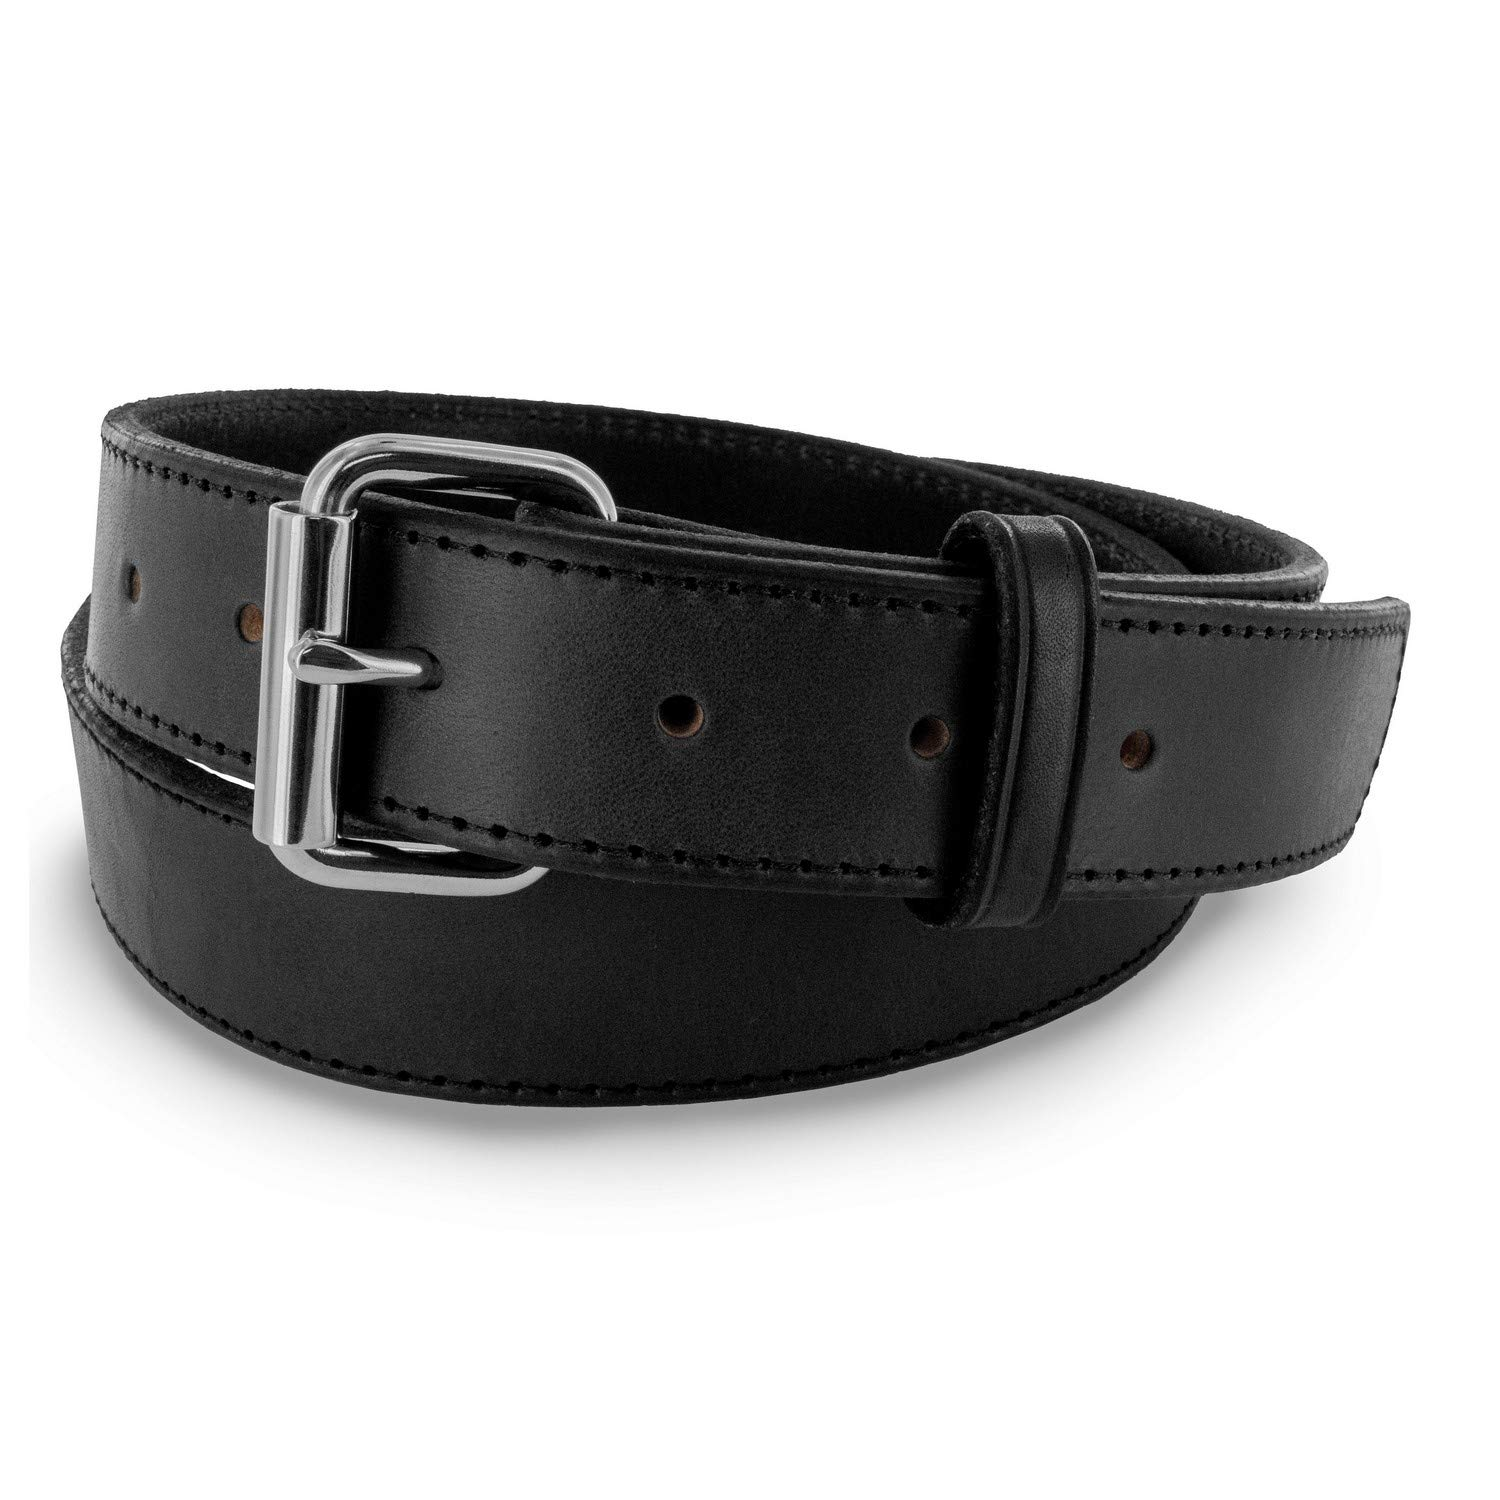 "Hanks Stitch Gunner Belts - 1.5"" Best Vaue in A Concealed Carry Belt - USA Made 13OZ Leather - 100 Year Warranty"